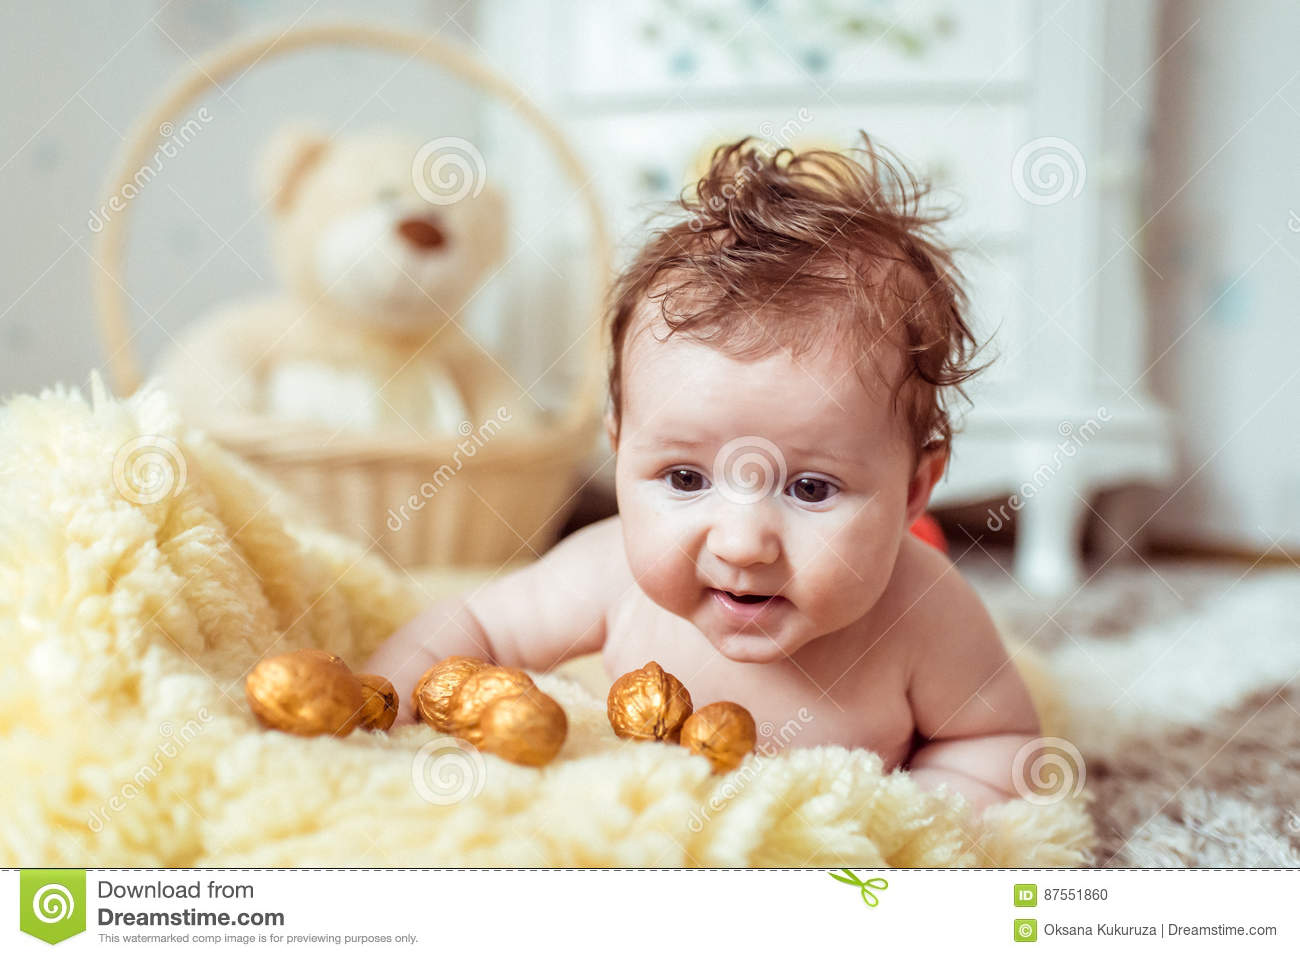 Royalty-Free photo: Naked baby on top of white textile